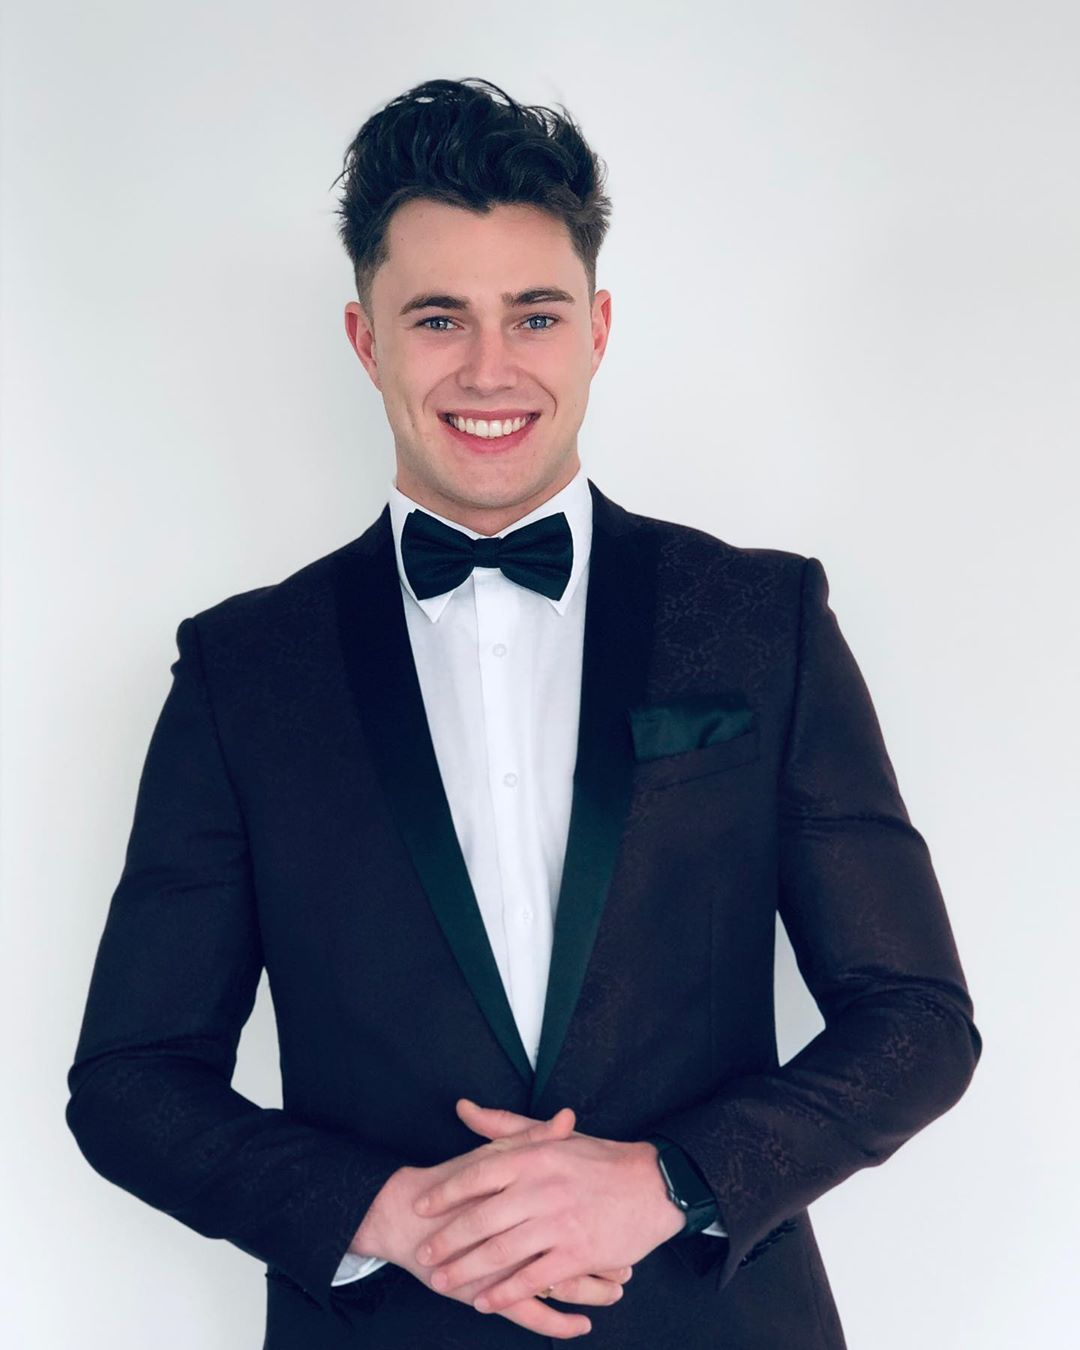 Image may contain: Love Island Instagrams, Love Island, Instagram, followers, ranking, 2019, Curtis, Human, Person, Tuxedo, Clothing, Coat, Overcoat, Apparel, Suit, Accessory, Accessories, Tie